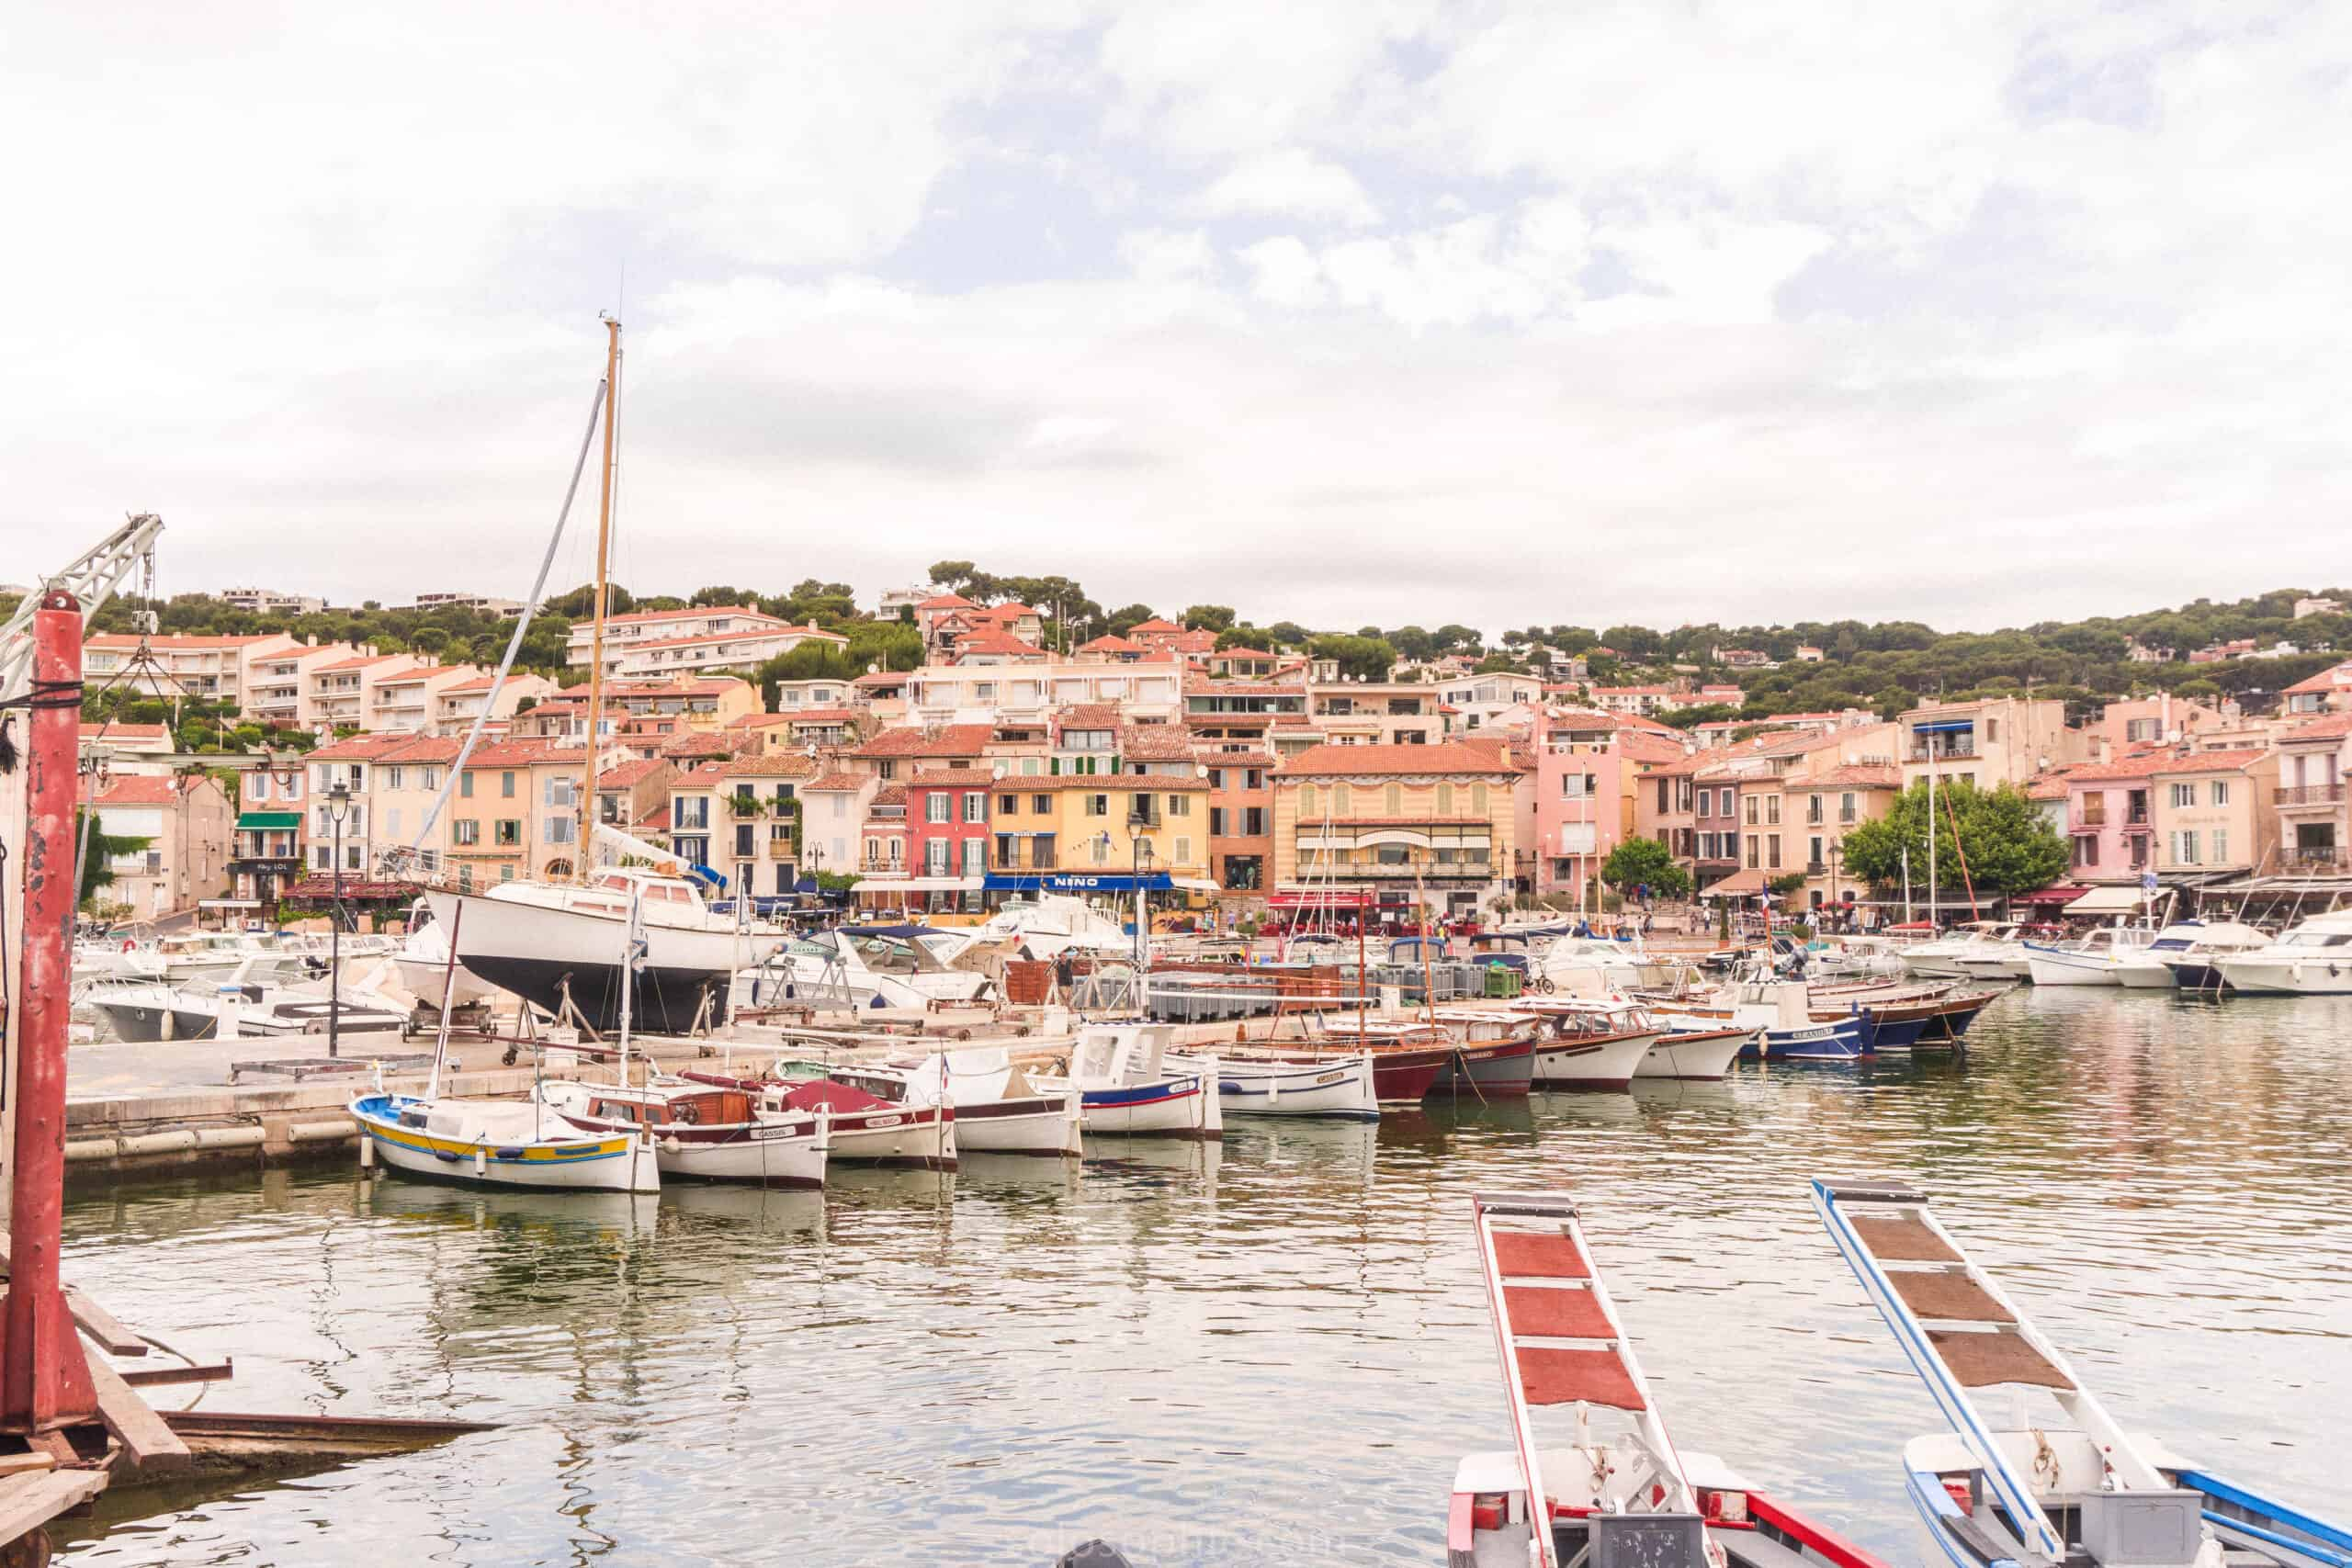 Books about Provence: Guide to the Best Things to do in Cassis, A Stunning Provençal Town, Provence, France